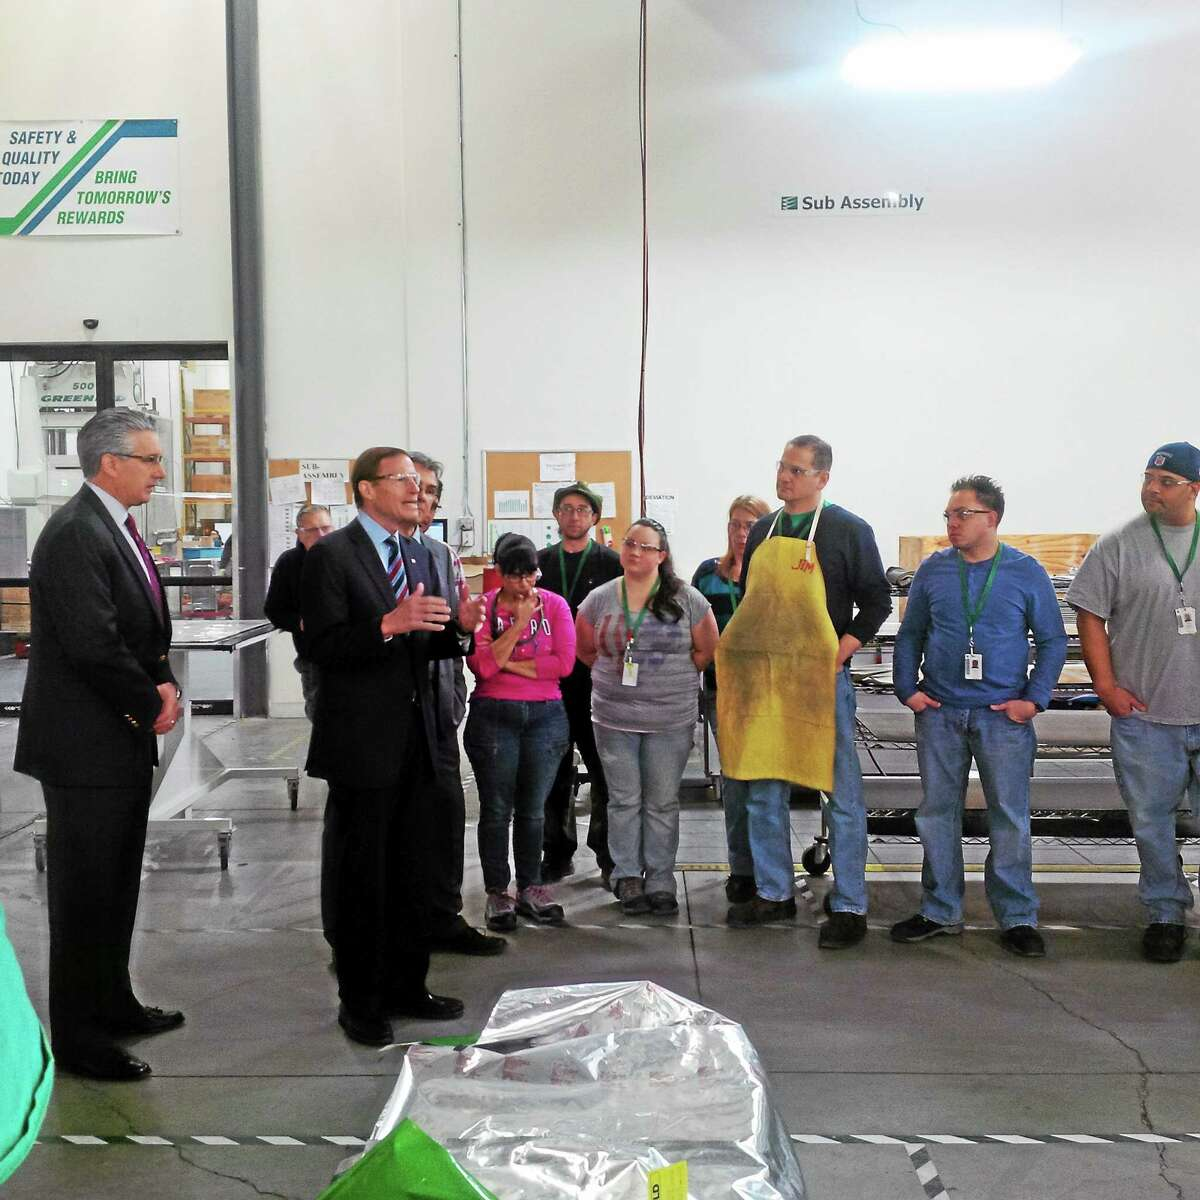 U.S. Sen. Richard Blumenthal speaks to employees at FuelCell Energy in Torrington on Friday.